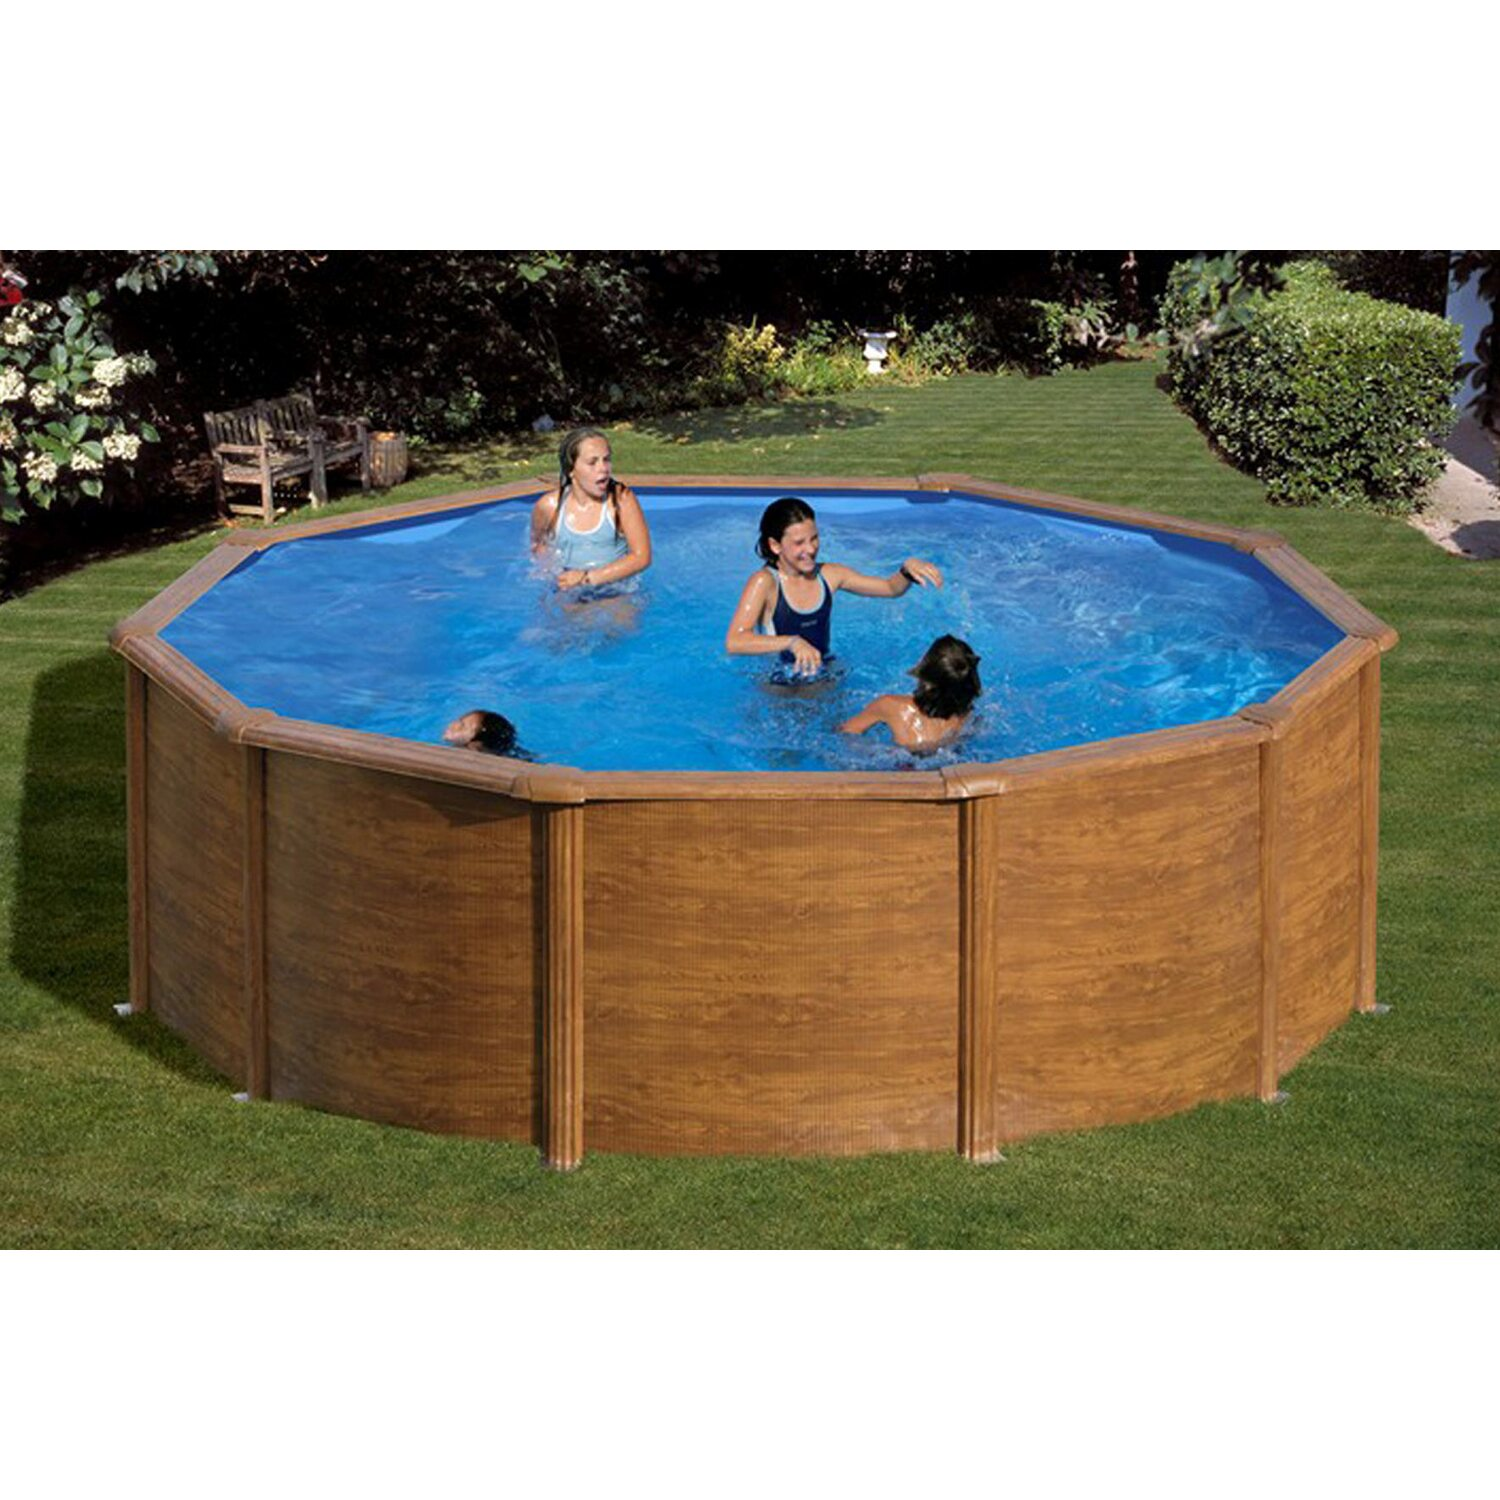 Summer fun stahlwand pool set holz dekor rhodos for Badepool obi